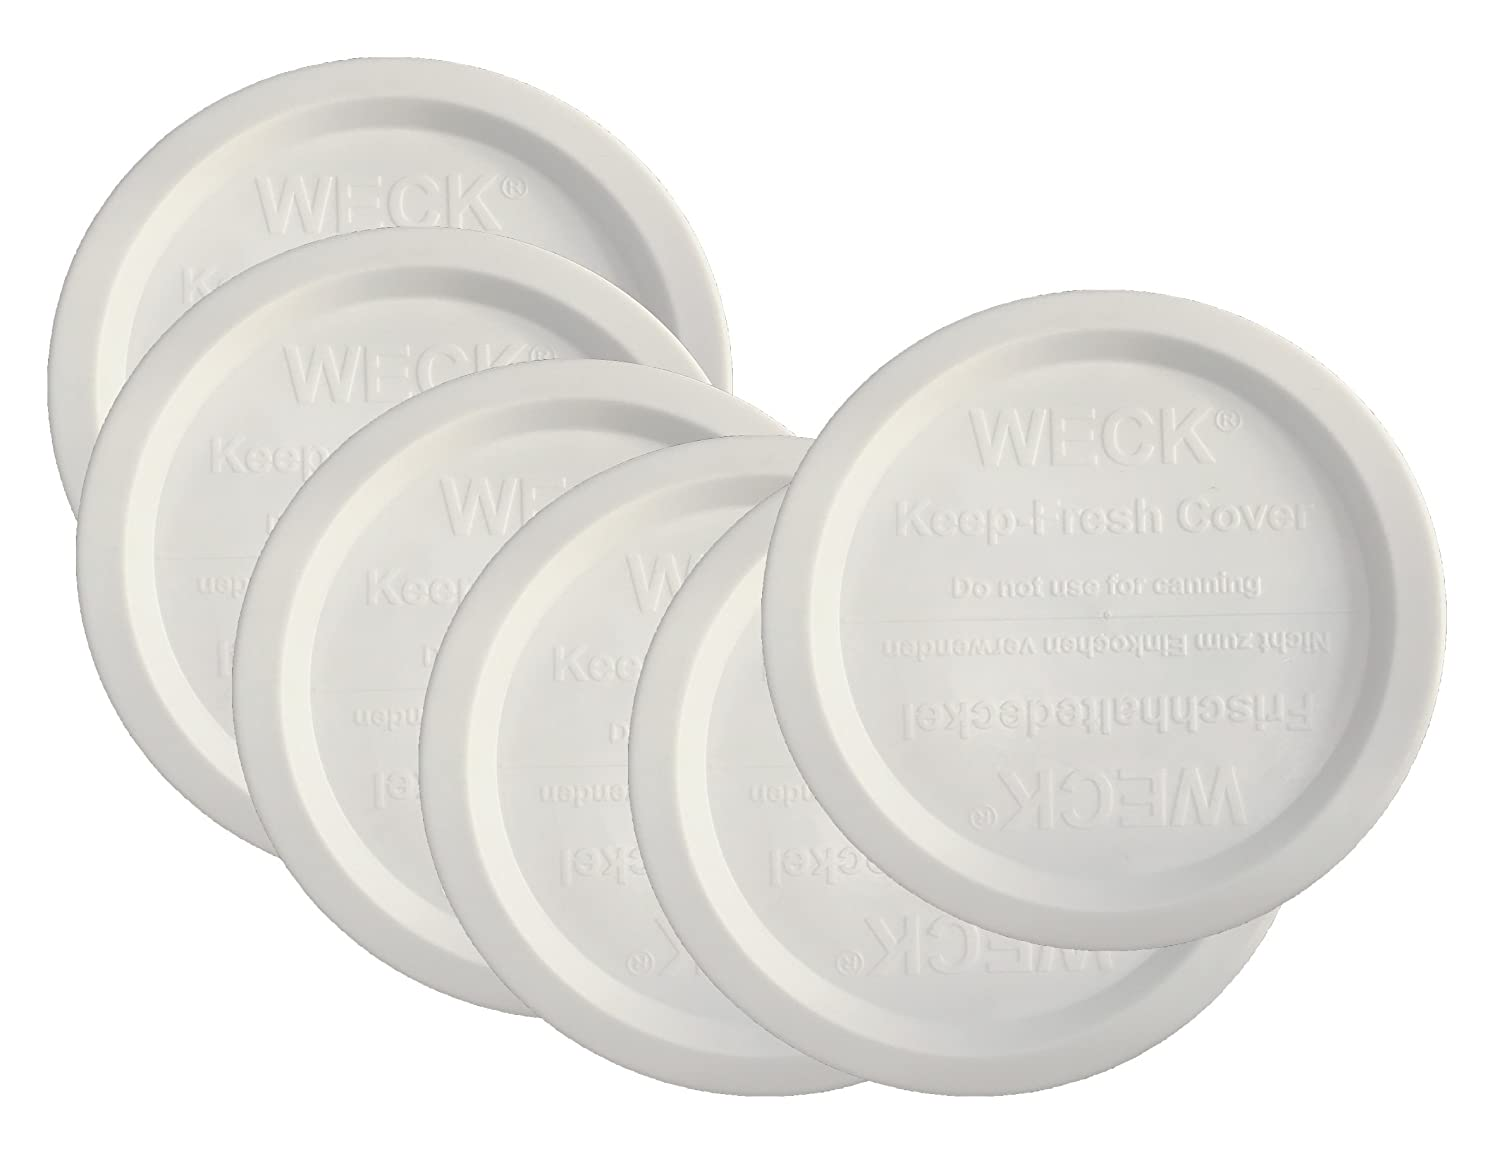 Weck Jar Keep Fresh Plastic Lids, 6 PACK (Small = 60mm). Fits models 080, 755, 760, 762, 902, 763, 764, 766, 905, 975, 995